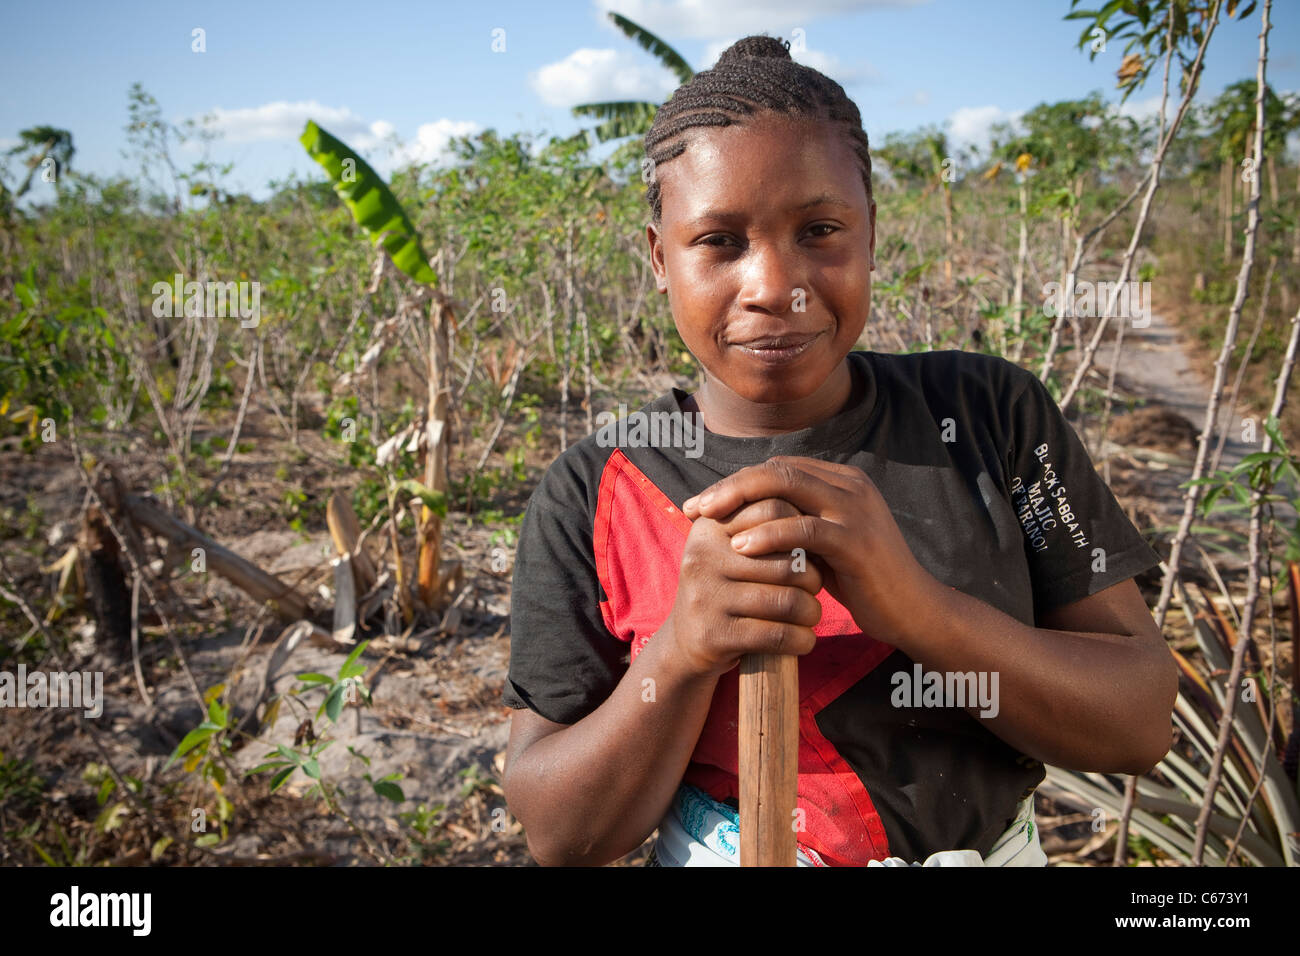 Zam Zam Juma (20) is a young victim of land-grabbing living in Tanzania, East Africa. Stock Photo